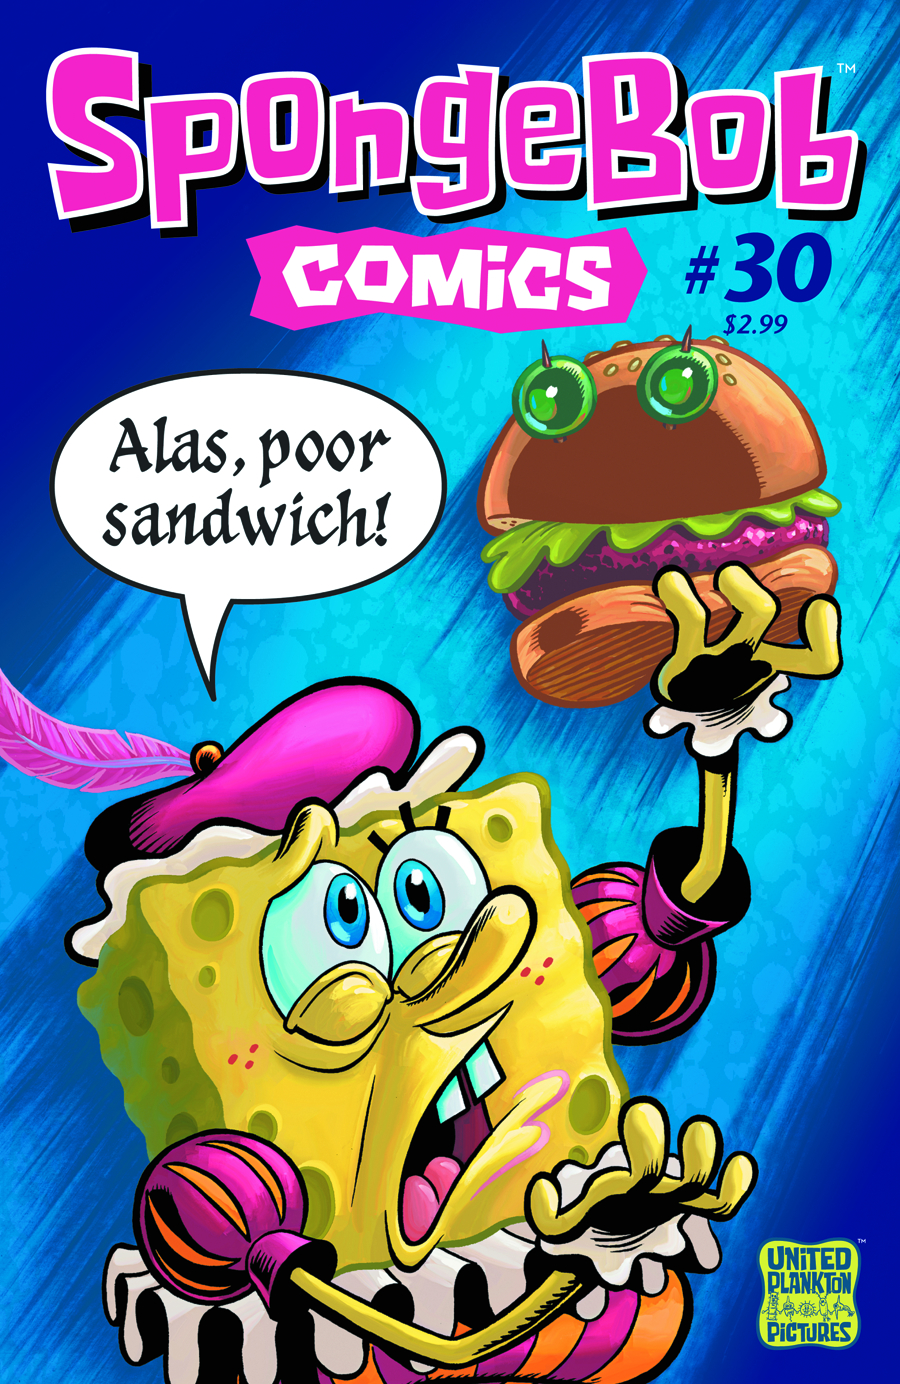 SPONGEBOB COMICS #30